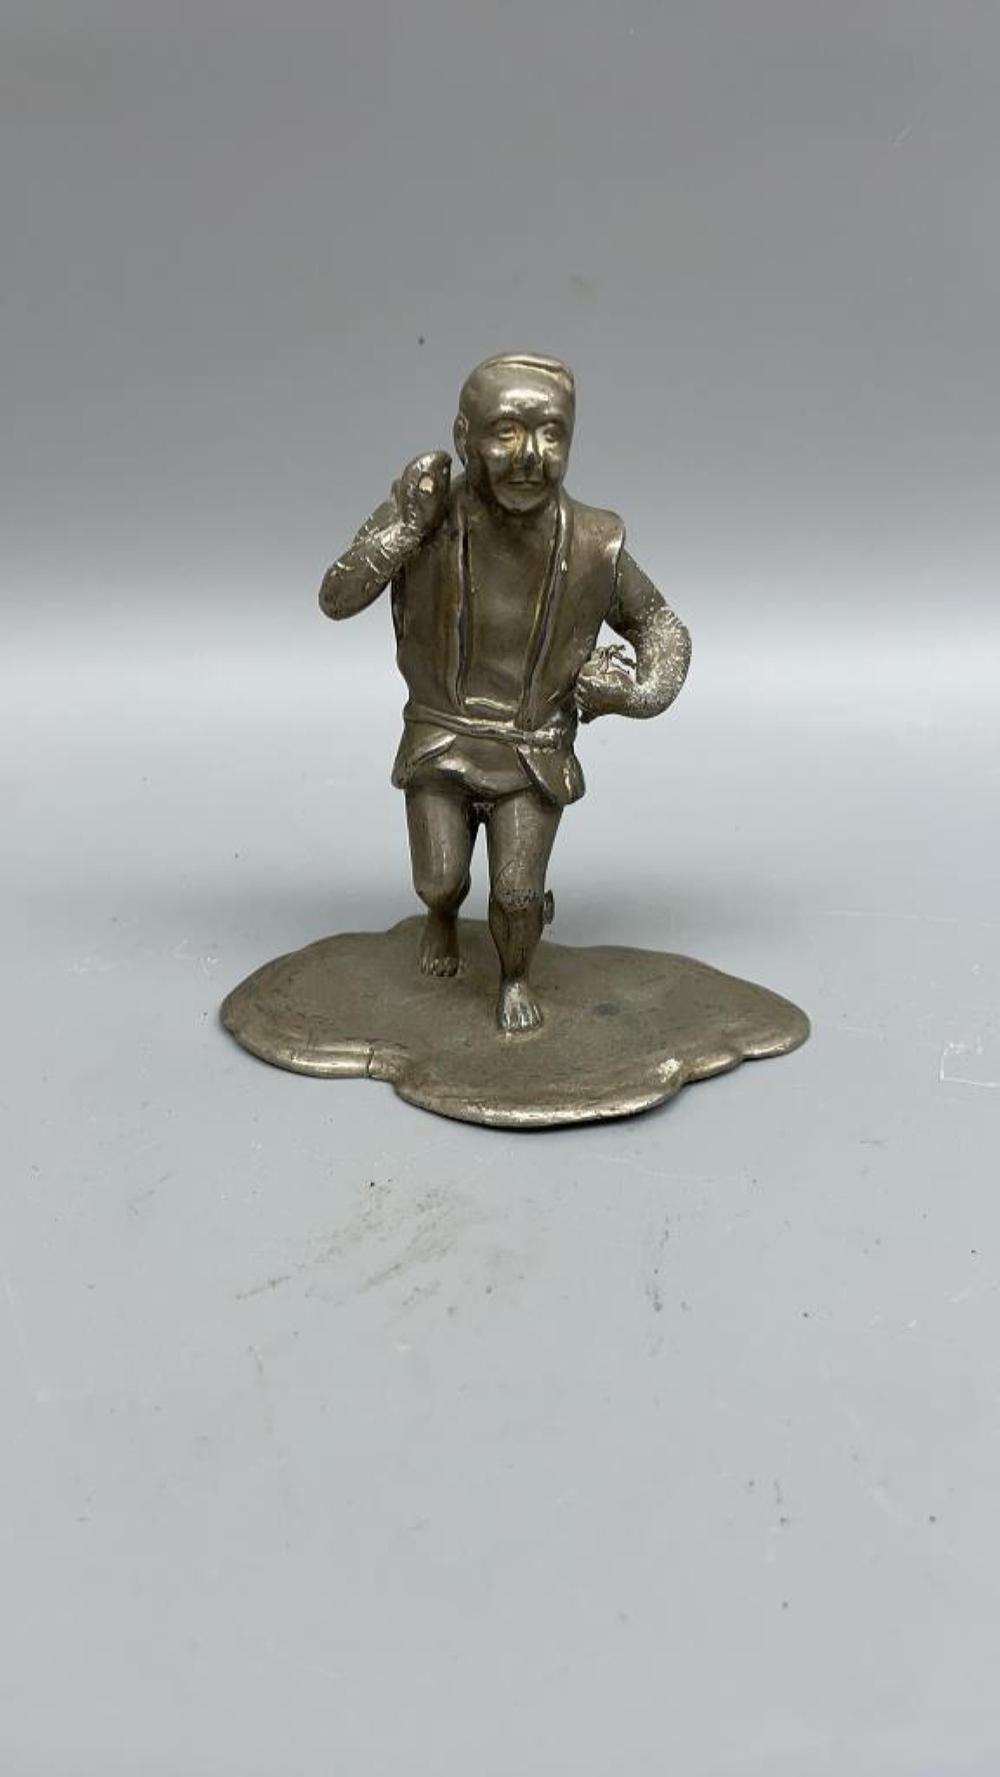 """Antique Chinese medal sculpture of a man 4.25""""x 4"""" x 2.25"""""""